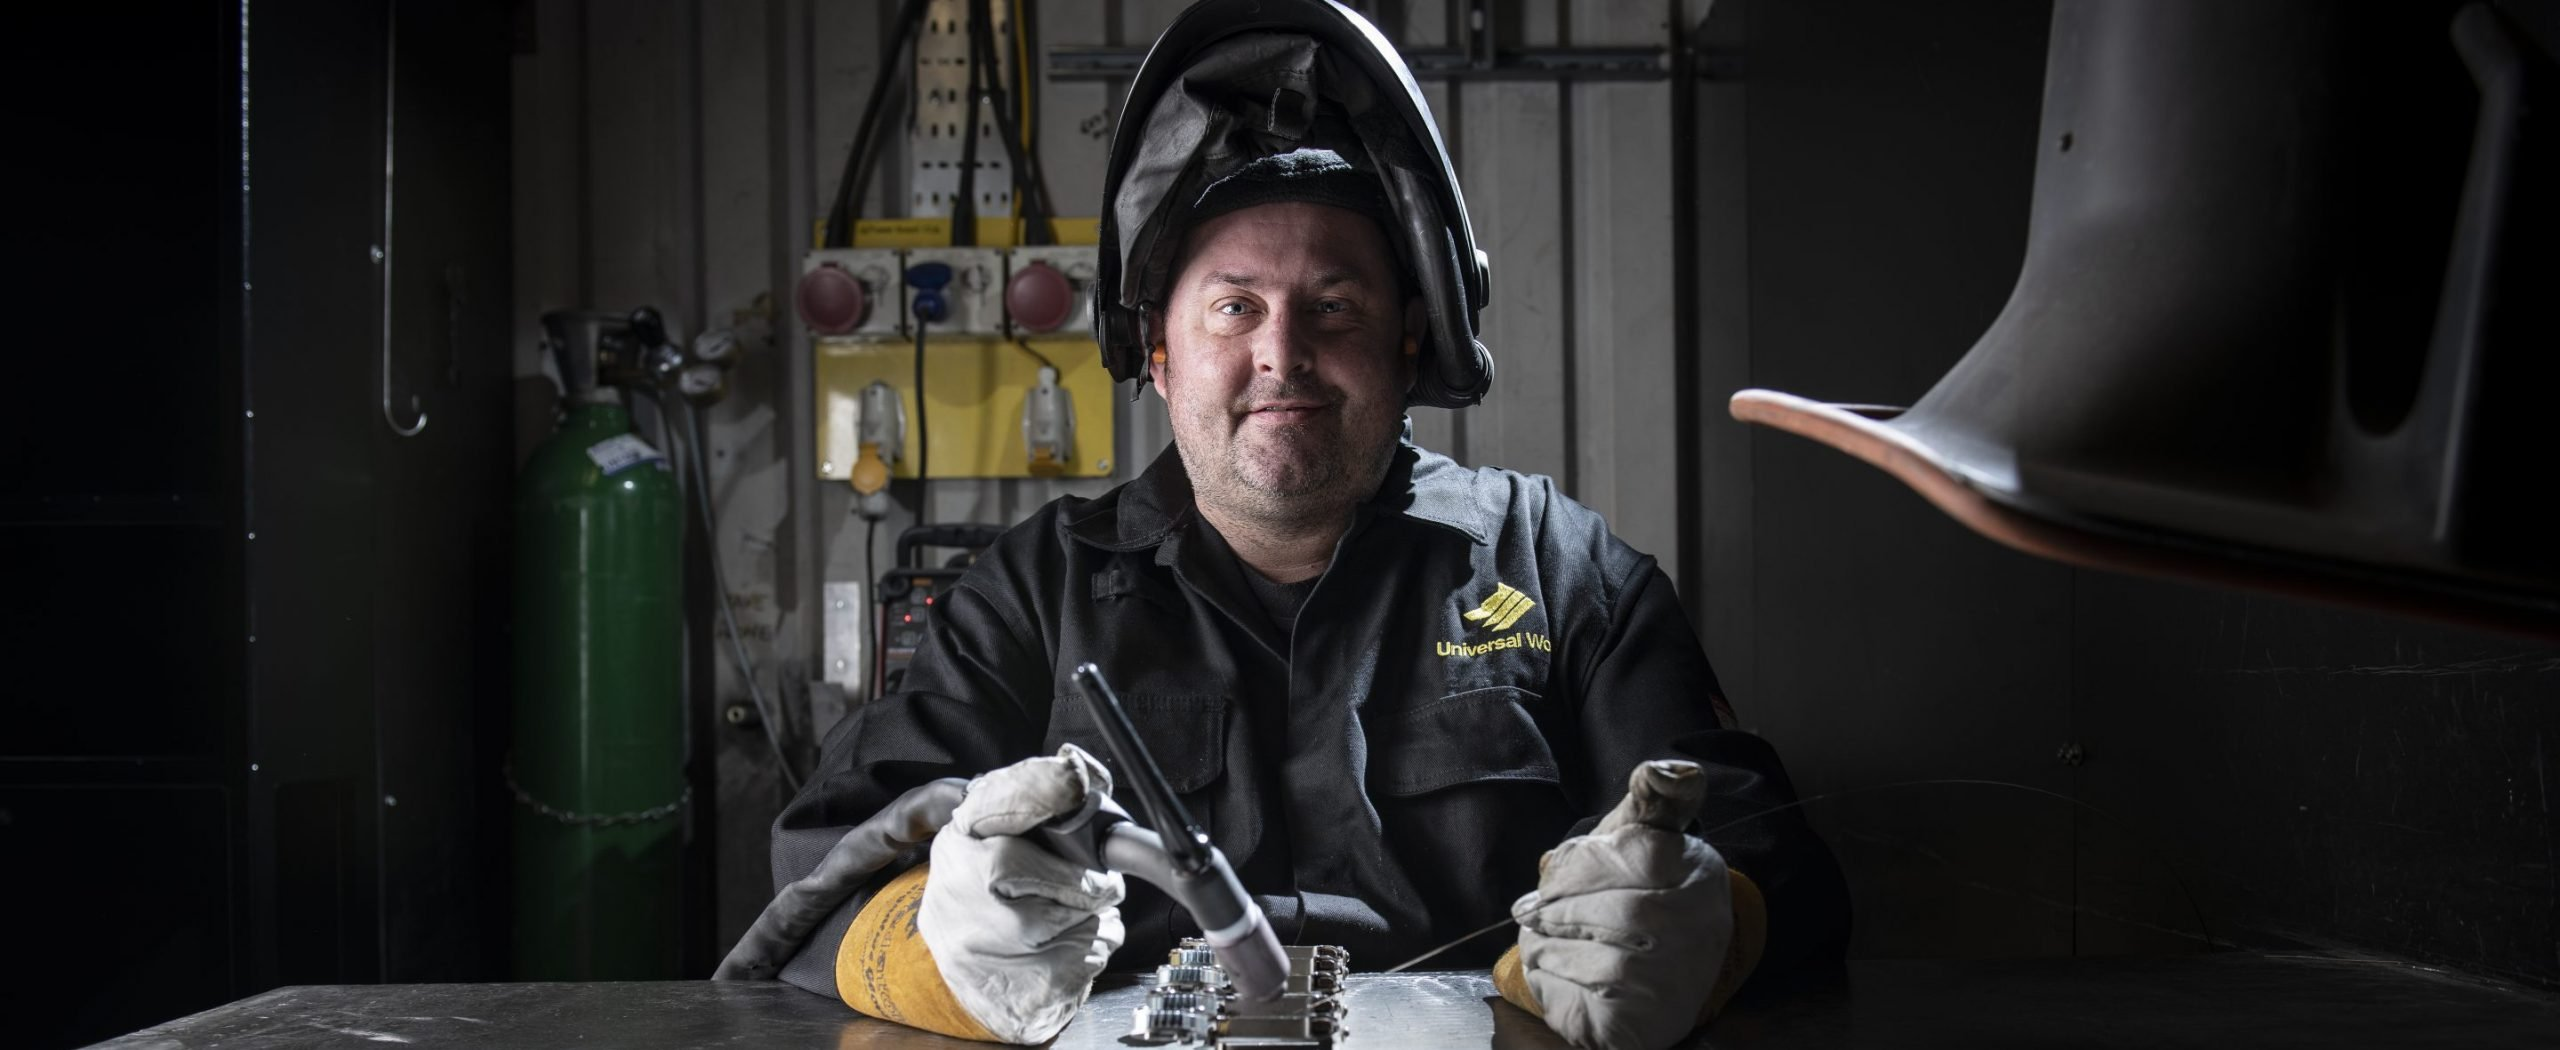 A welder working in Universal Wolf's sheet metal welding and fabrication service